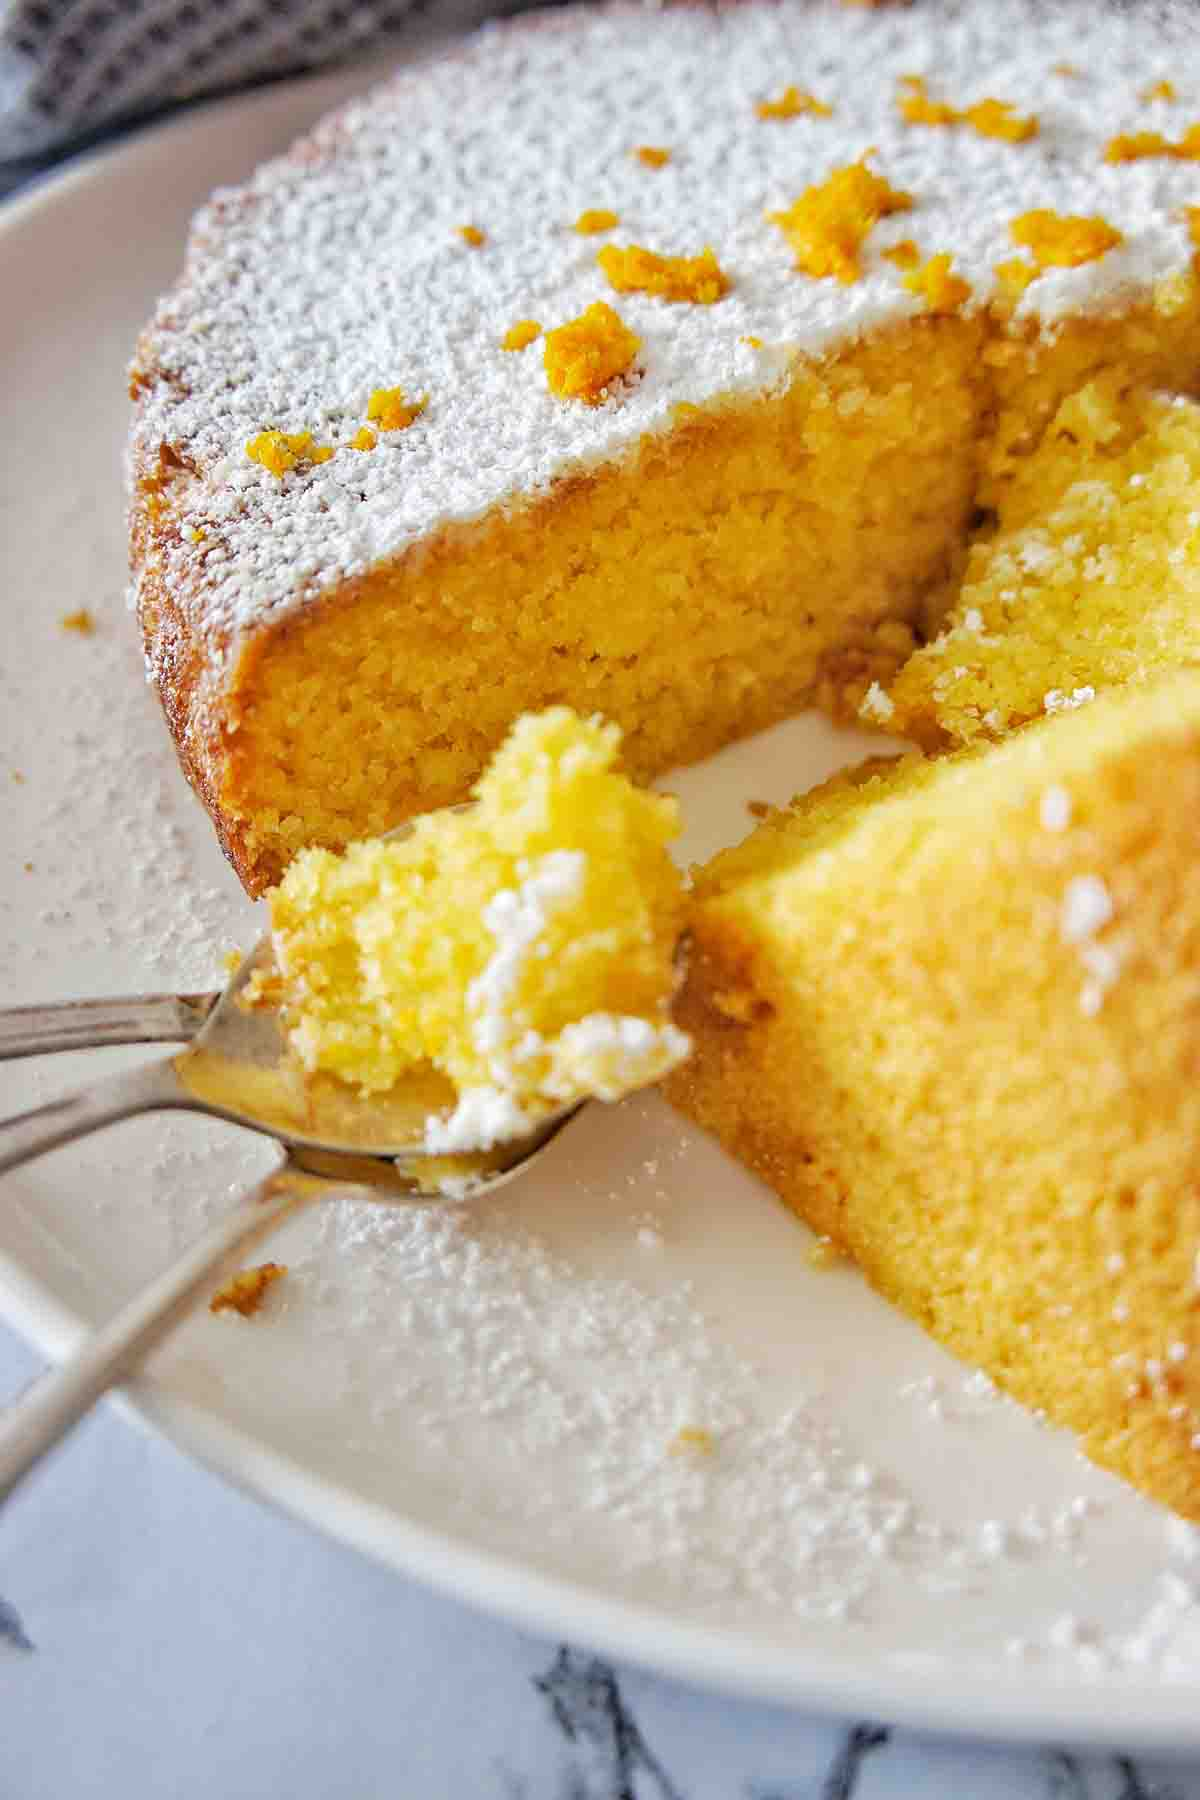 Orange Polenta Cake on a white plate with silver teaspoons